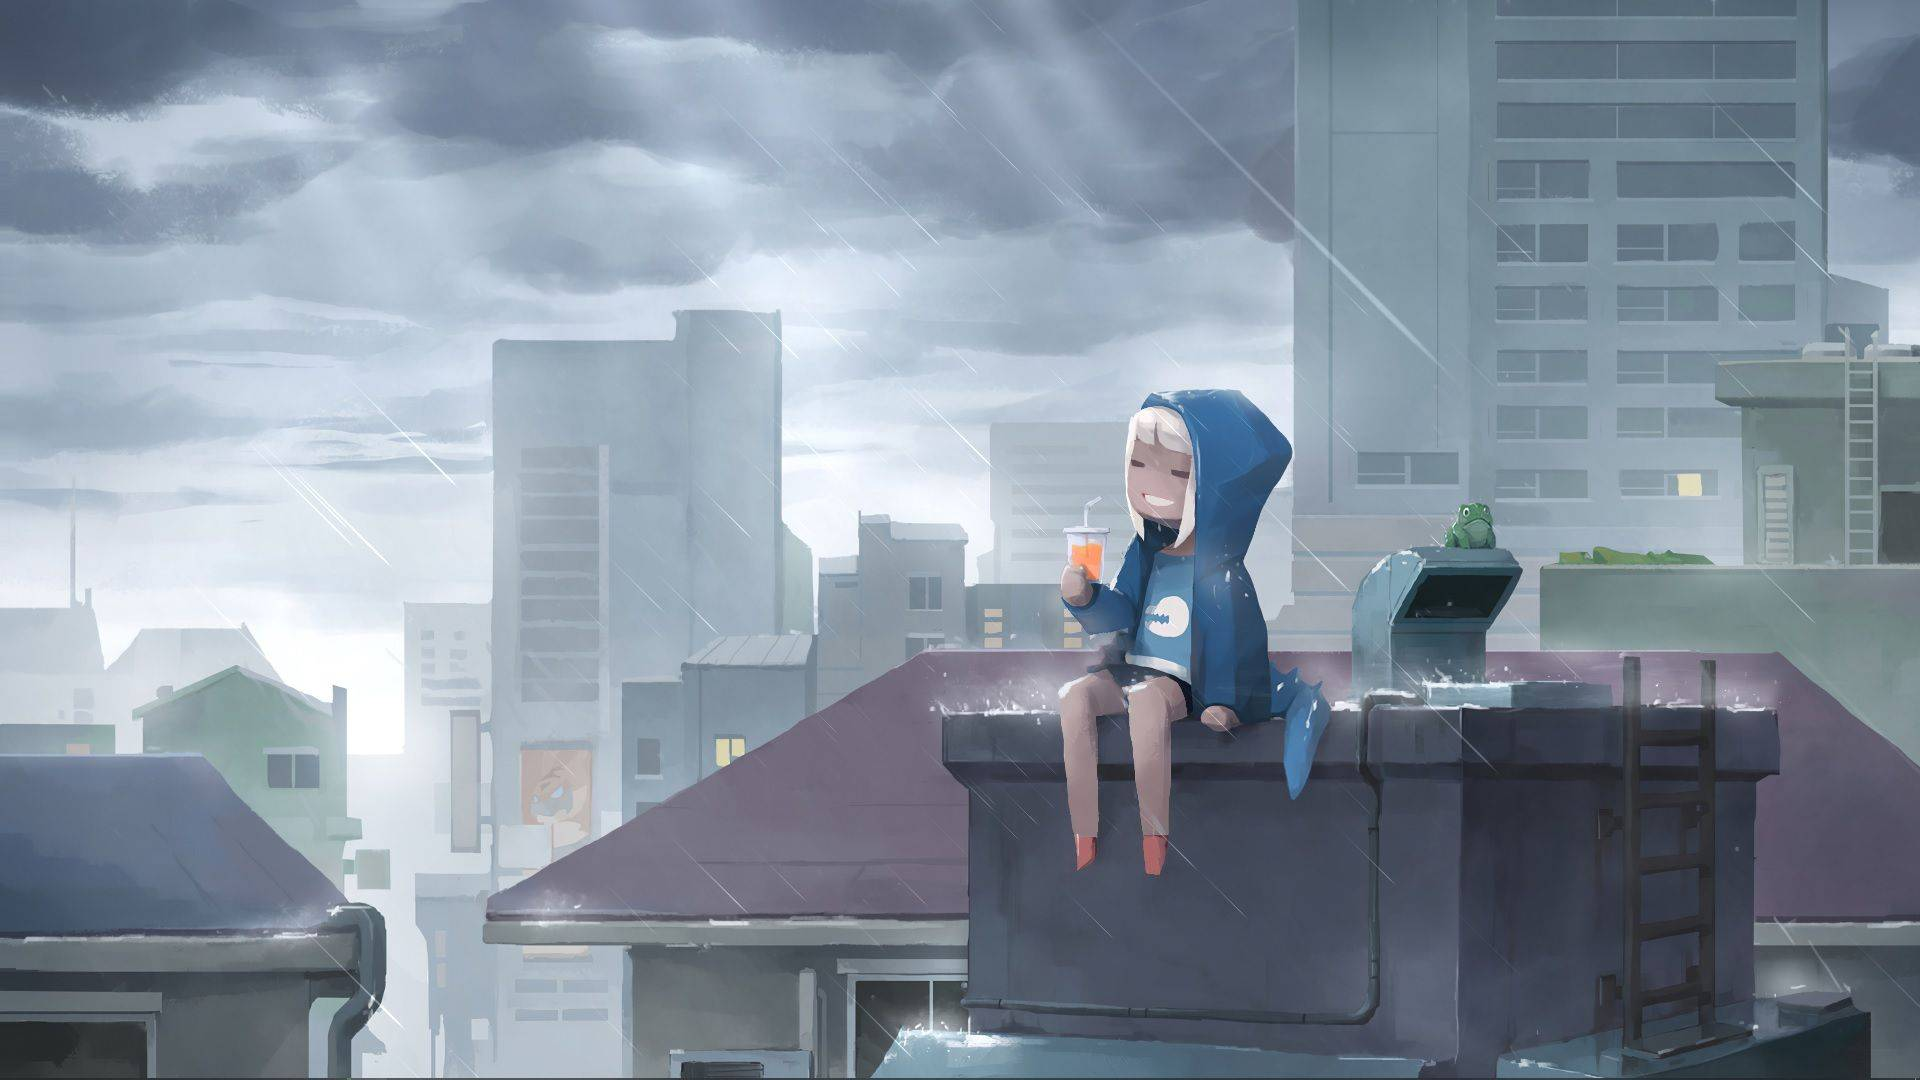 Hd wallpapers and background images. Lofi Hip Hop Rain in 4K - anime live wallpaper #32954 ...